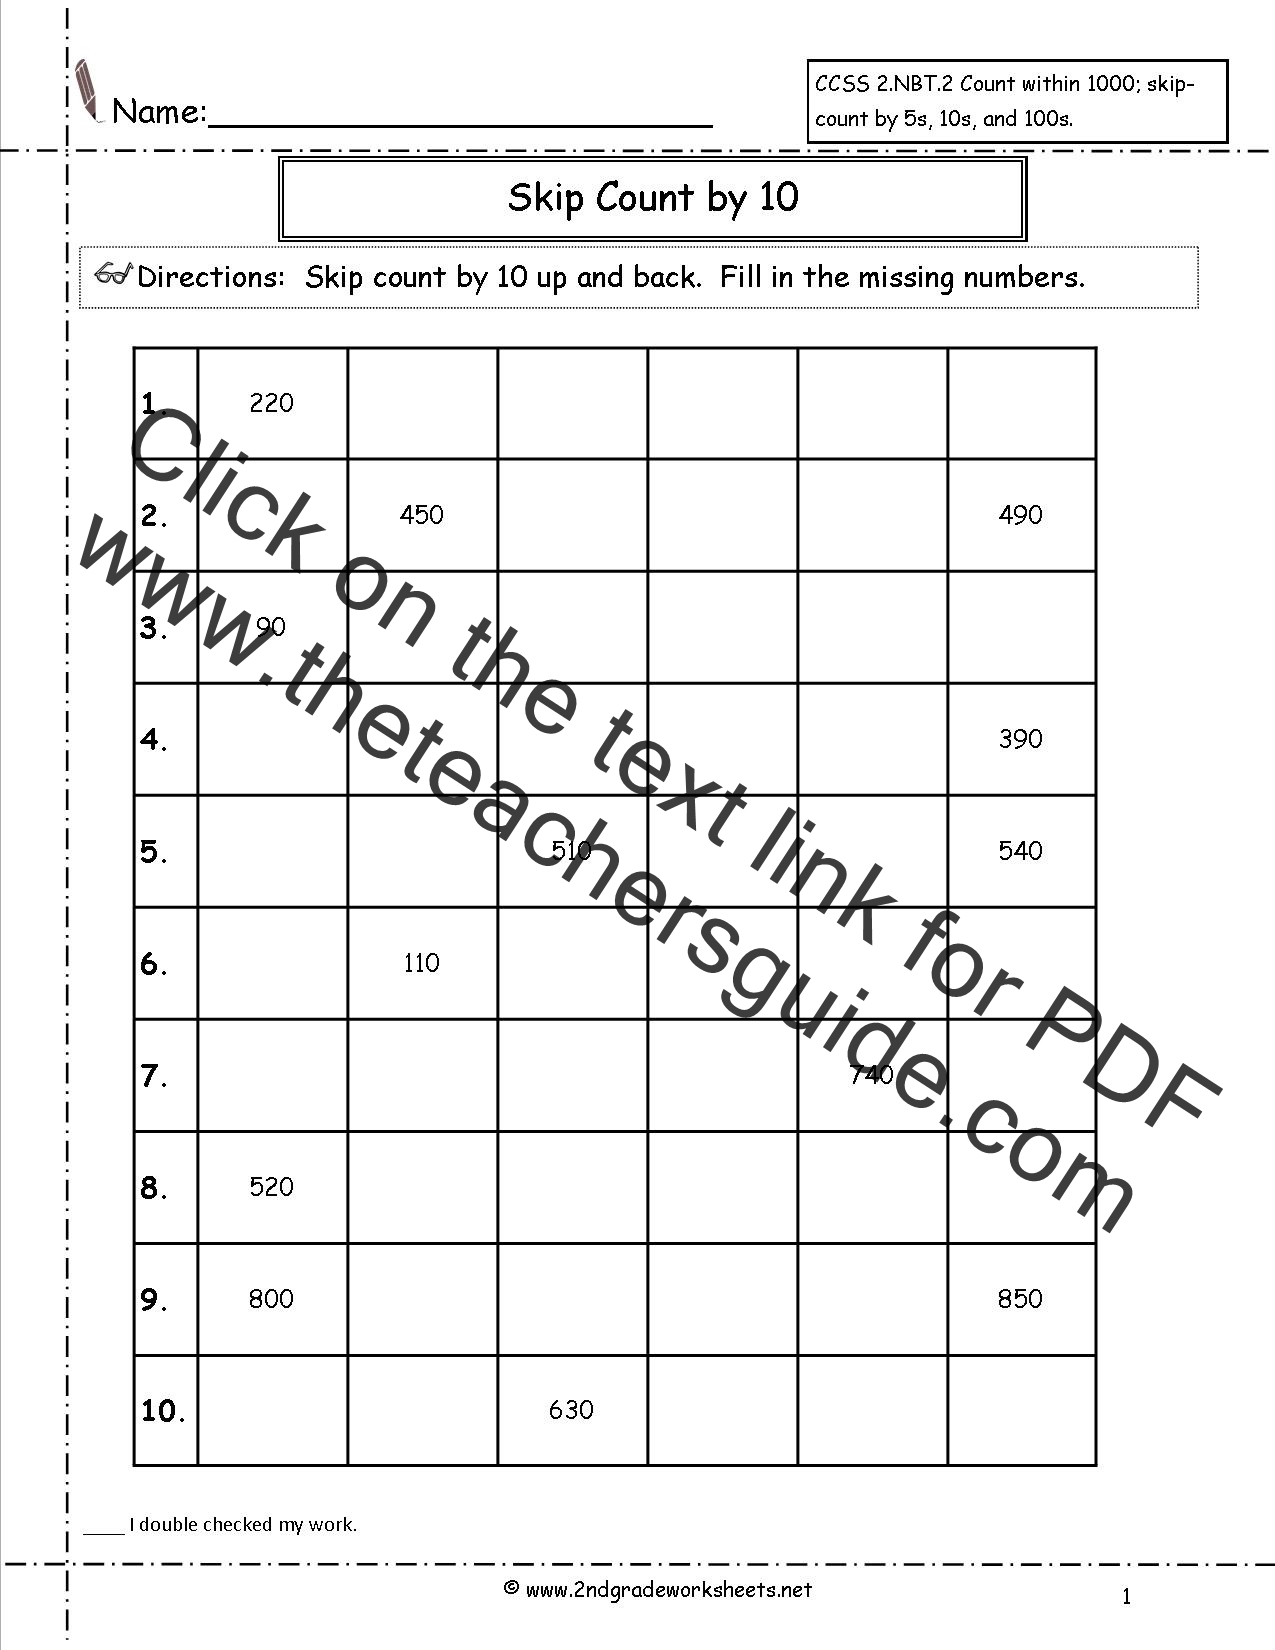 worksheet Skip Counting By 10 Worksheets ccss 2 nbt worksheets skip counting by 10 worksheets